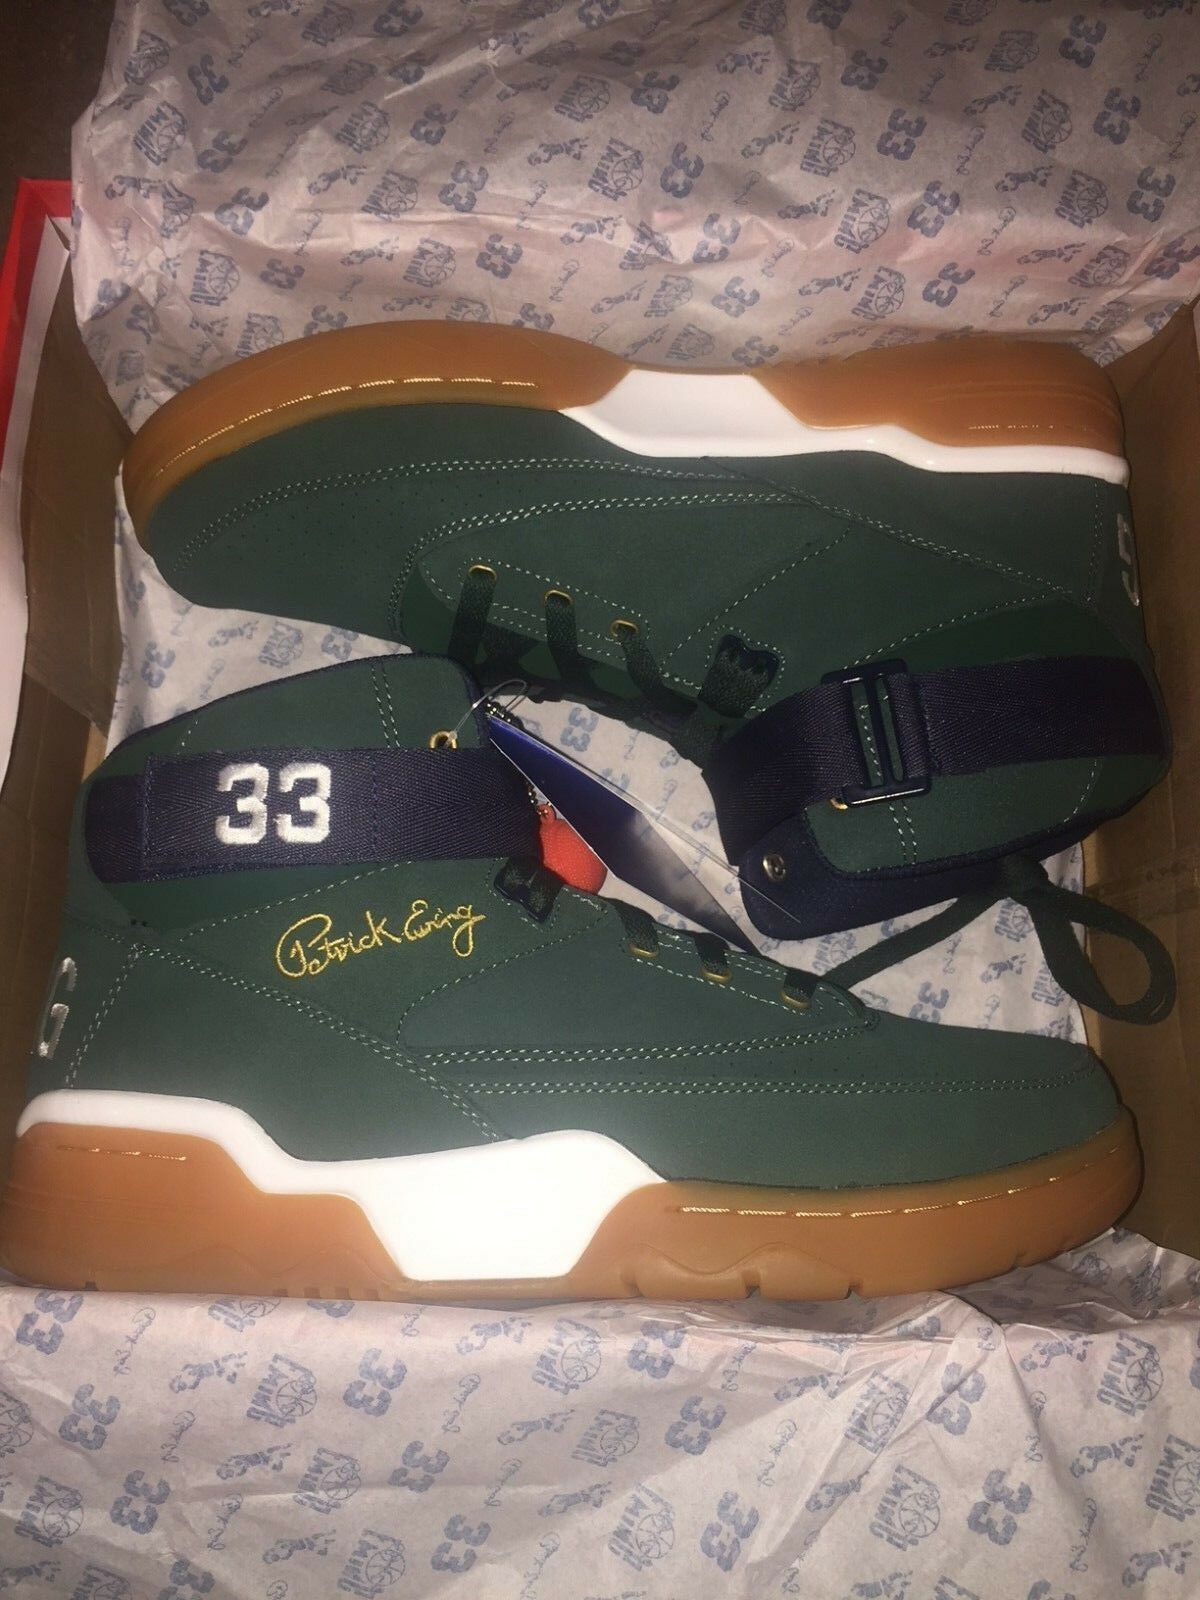 Patrick Ewing Athletics Hi 33 Olive Suede Gum Basketball Chaussures 1EW90212-363 8-13